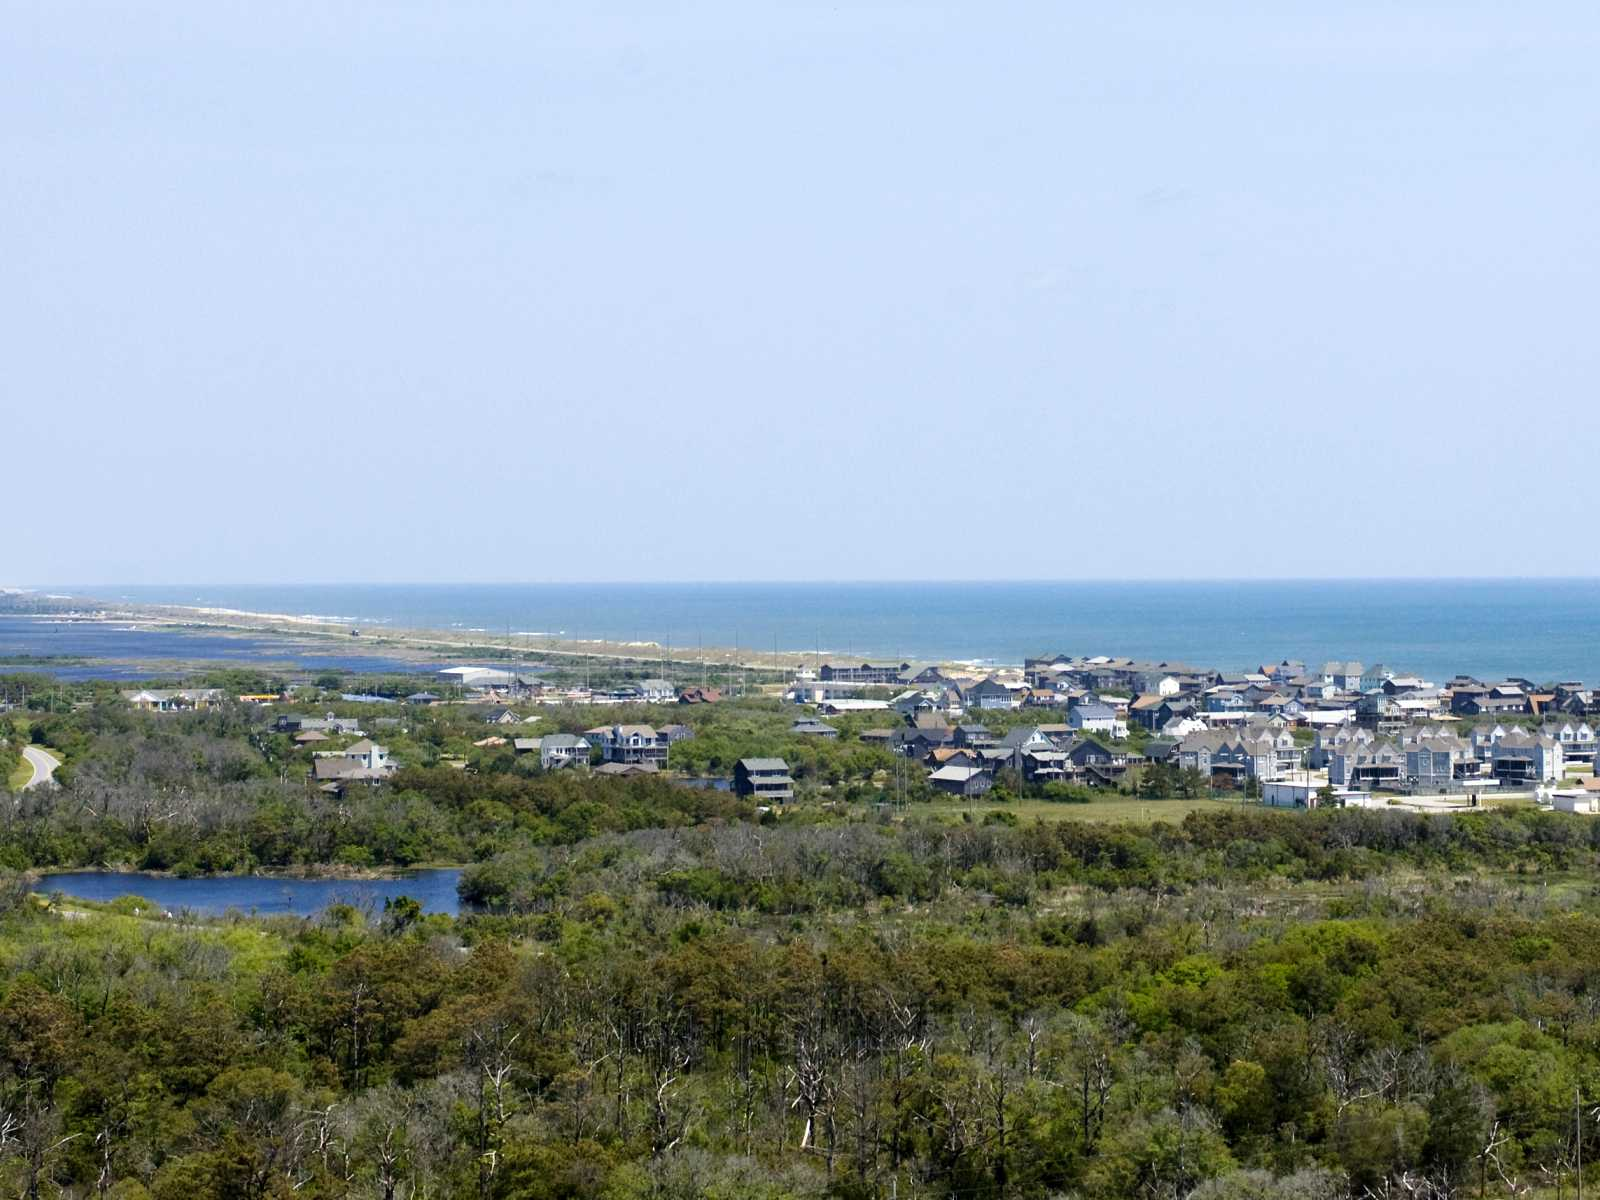 Photo of a View from Cape Hatteras Lighthouse